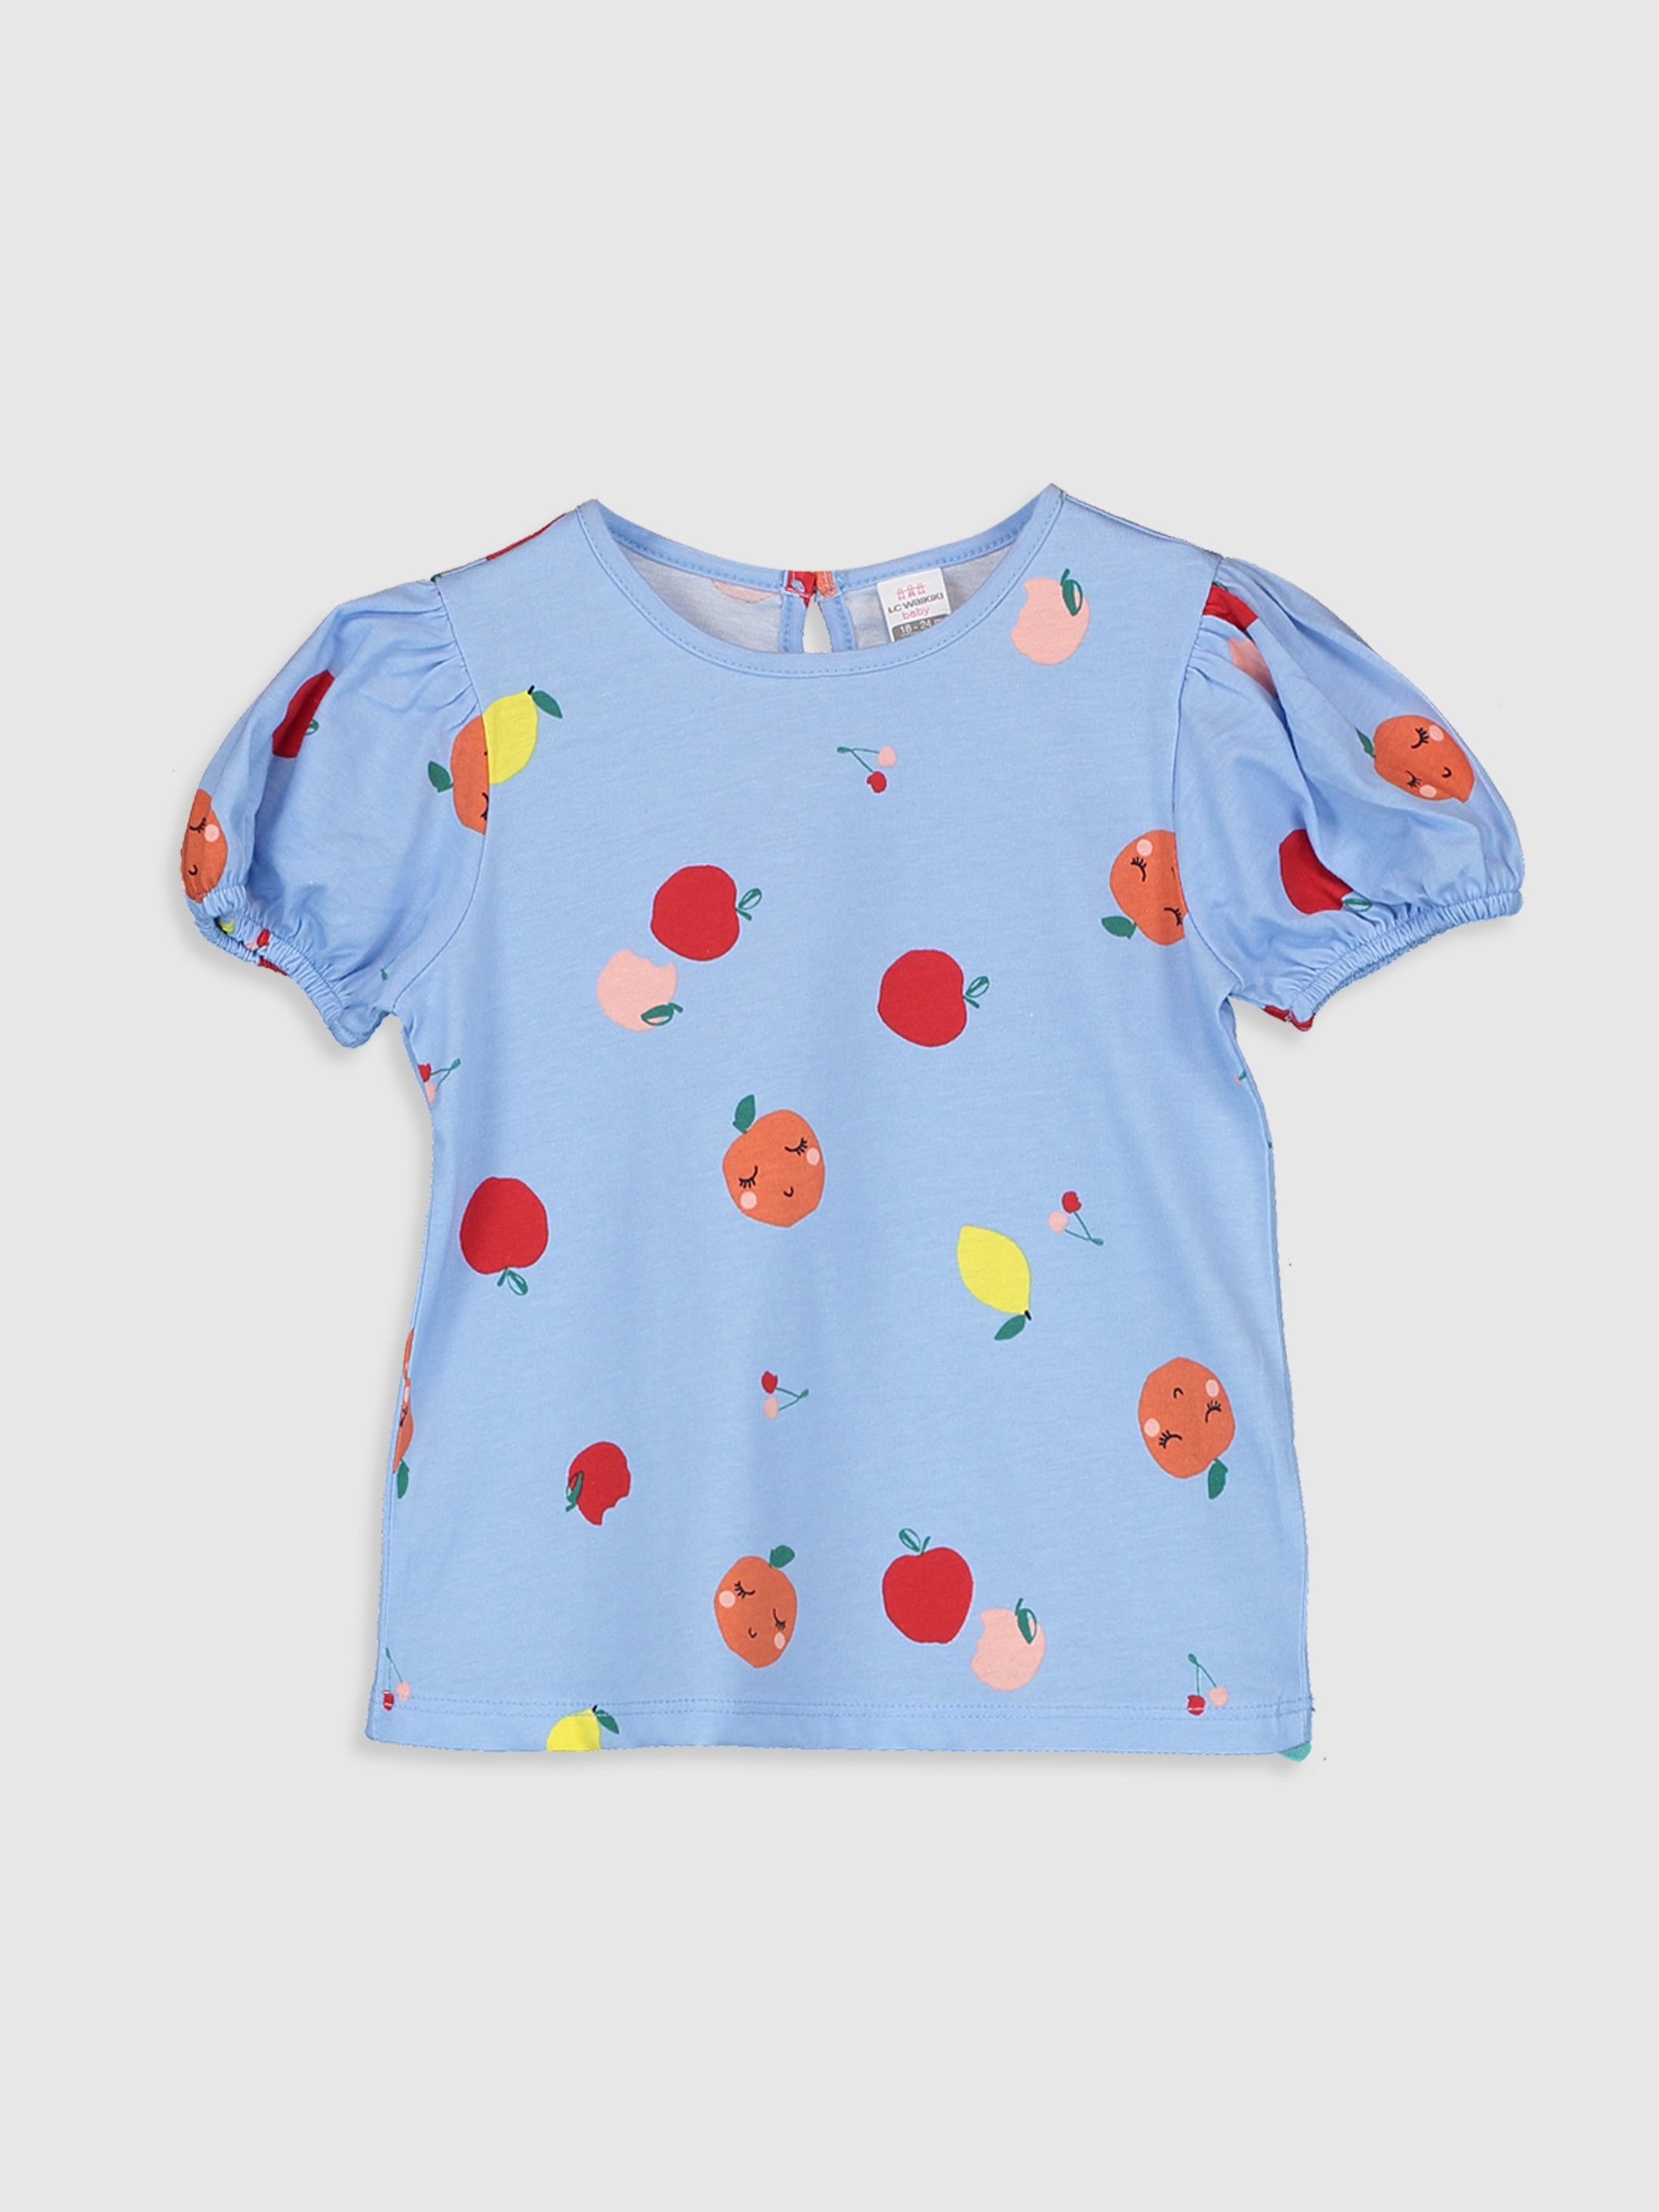 BLUE - Baby Girl's Printed Cotton T-Shirt - 0SV565Z1